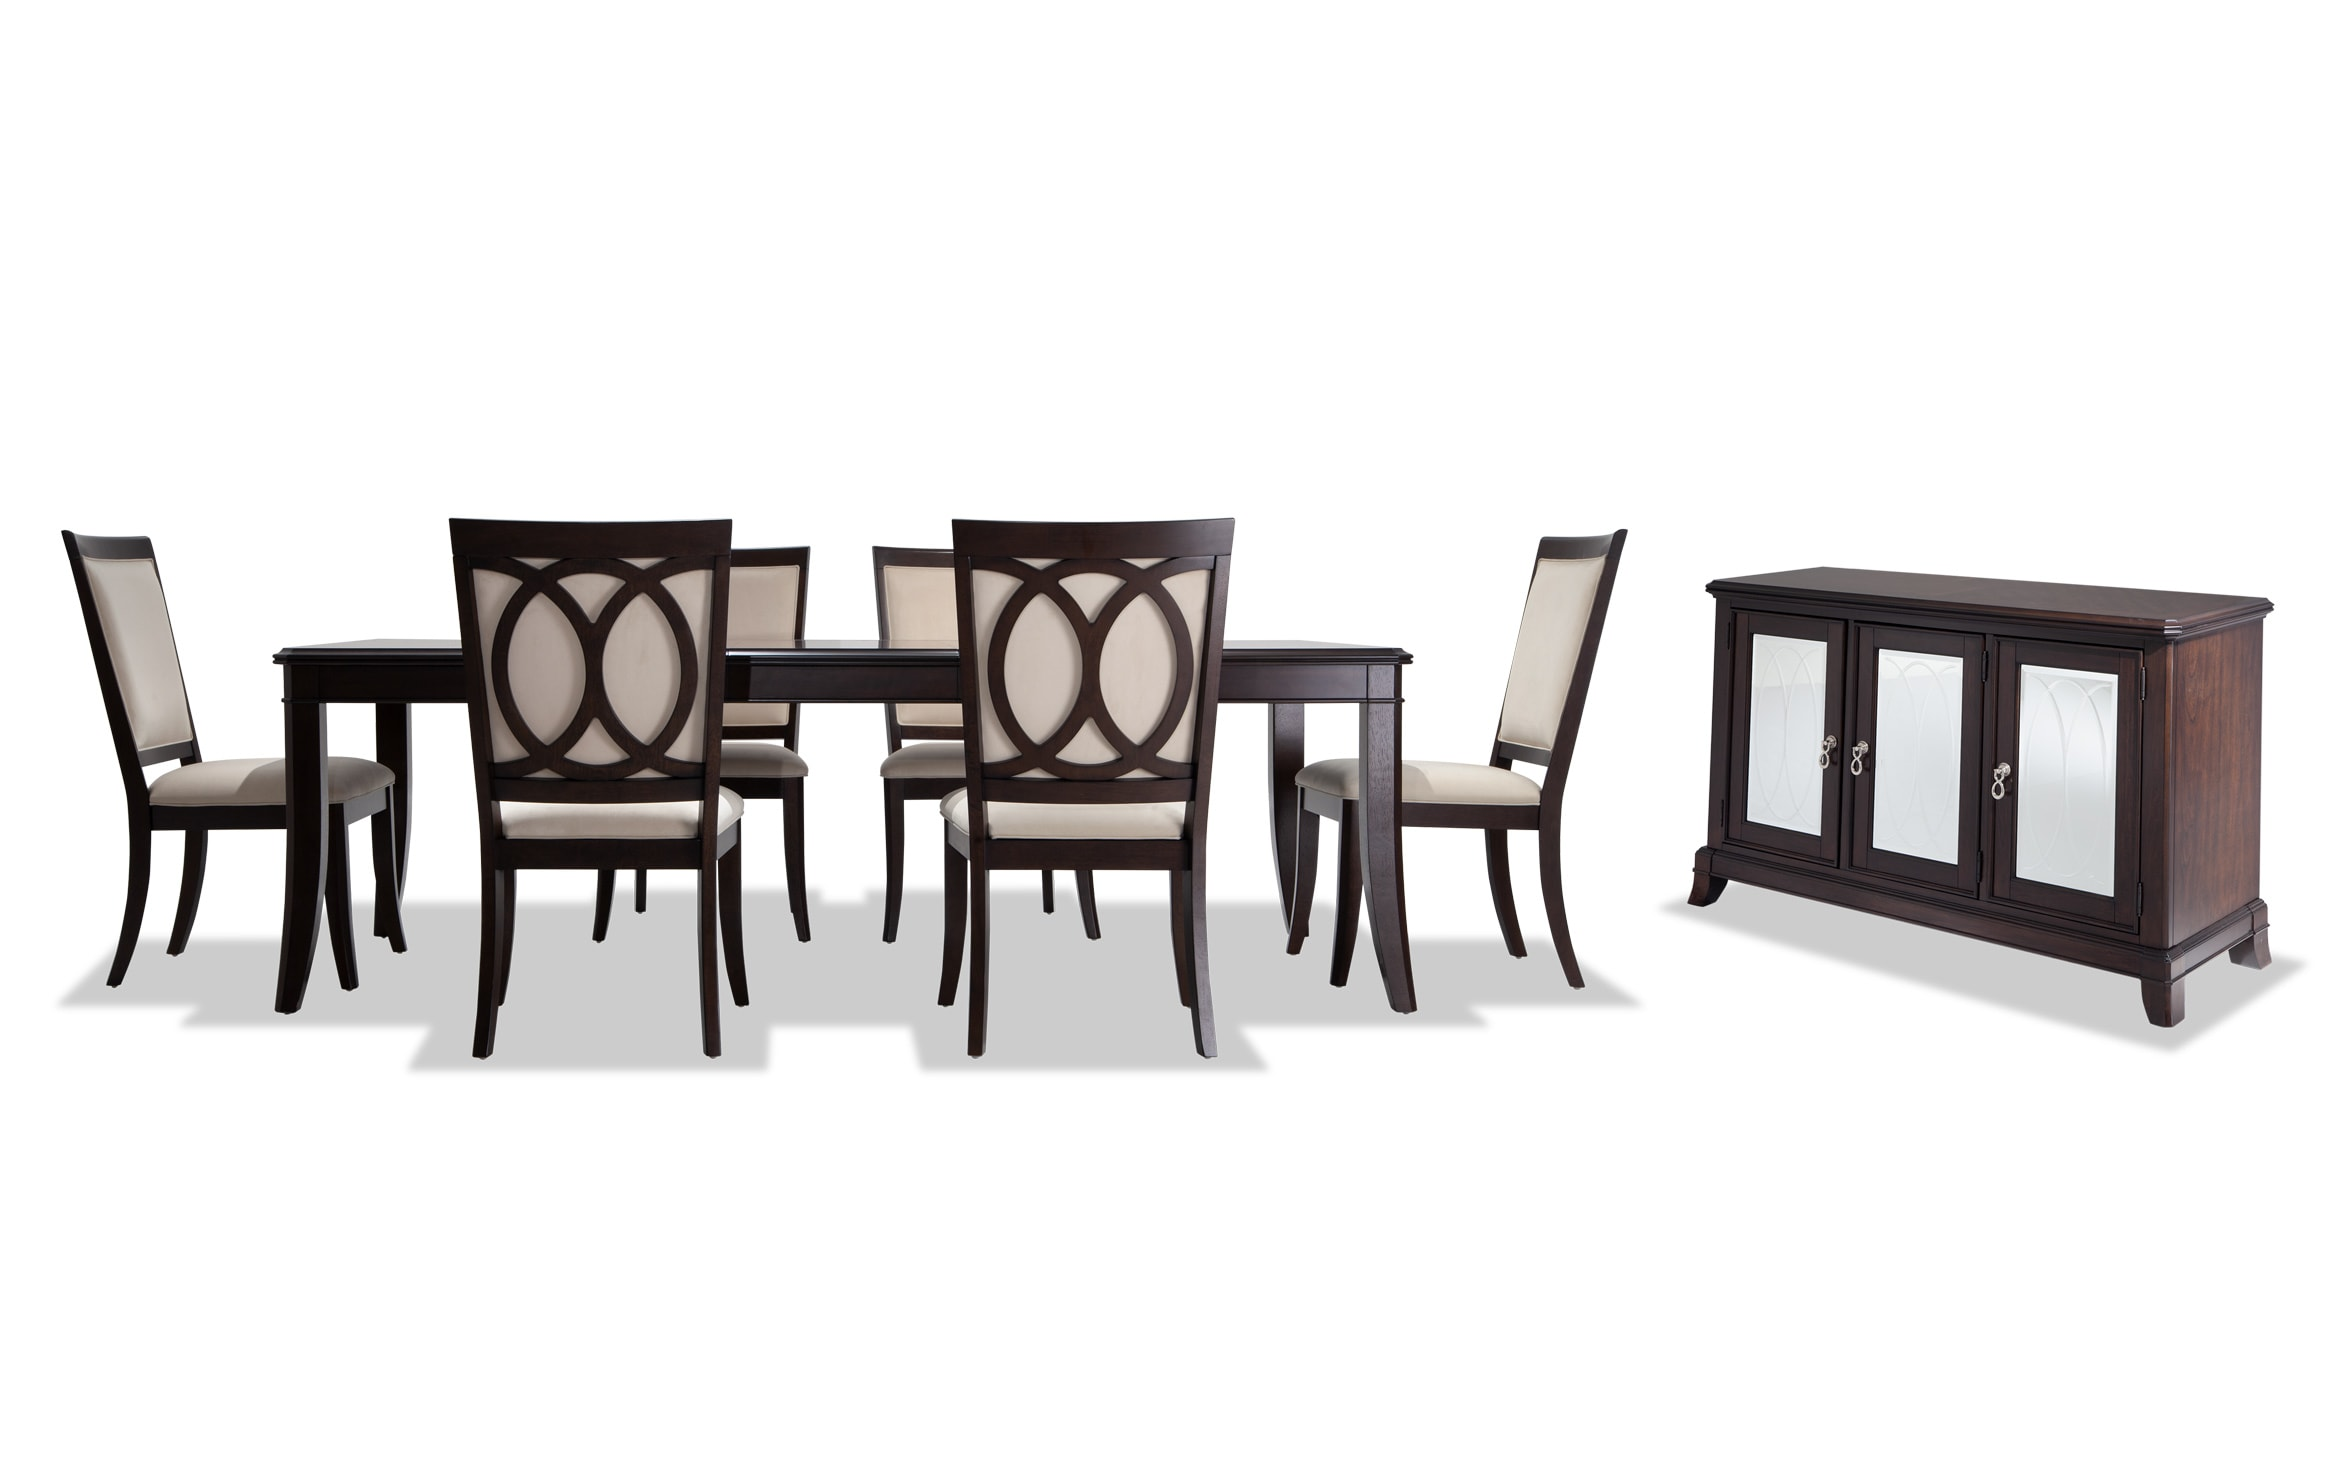 Coco 8 Piece Dining Set With Server, White Dining Room Table Seats 8